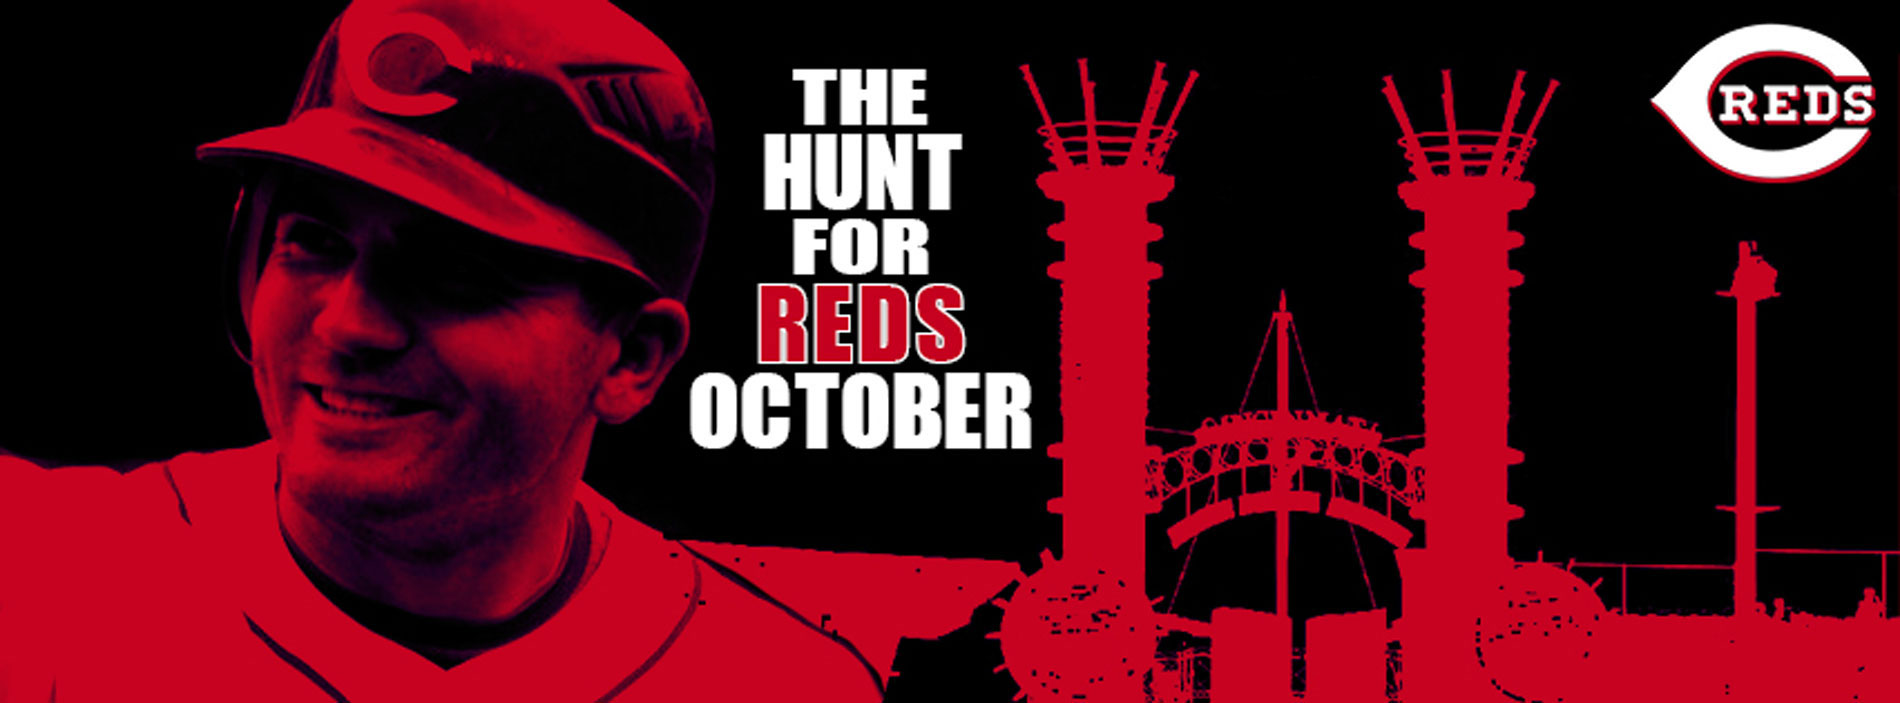 The Hunt for Reds October